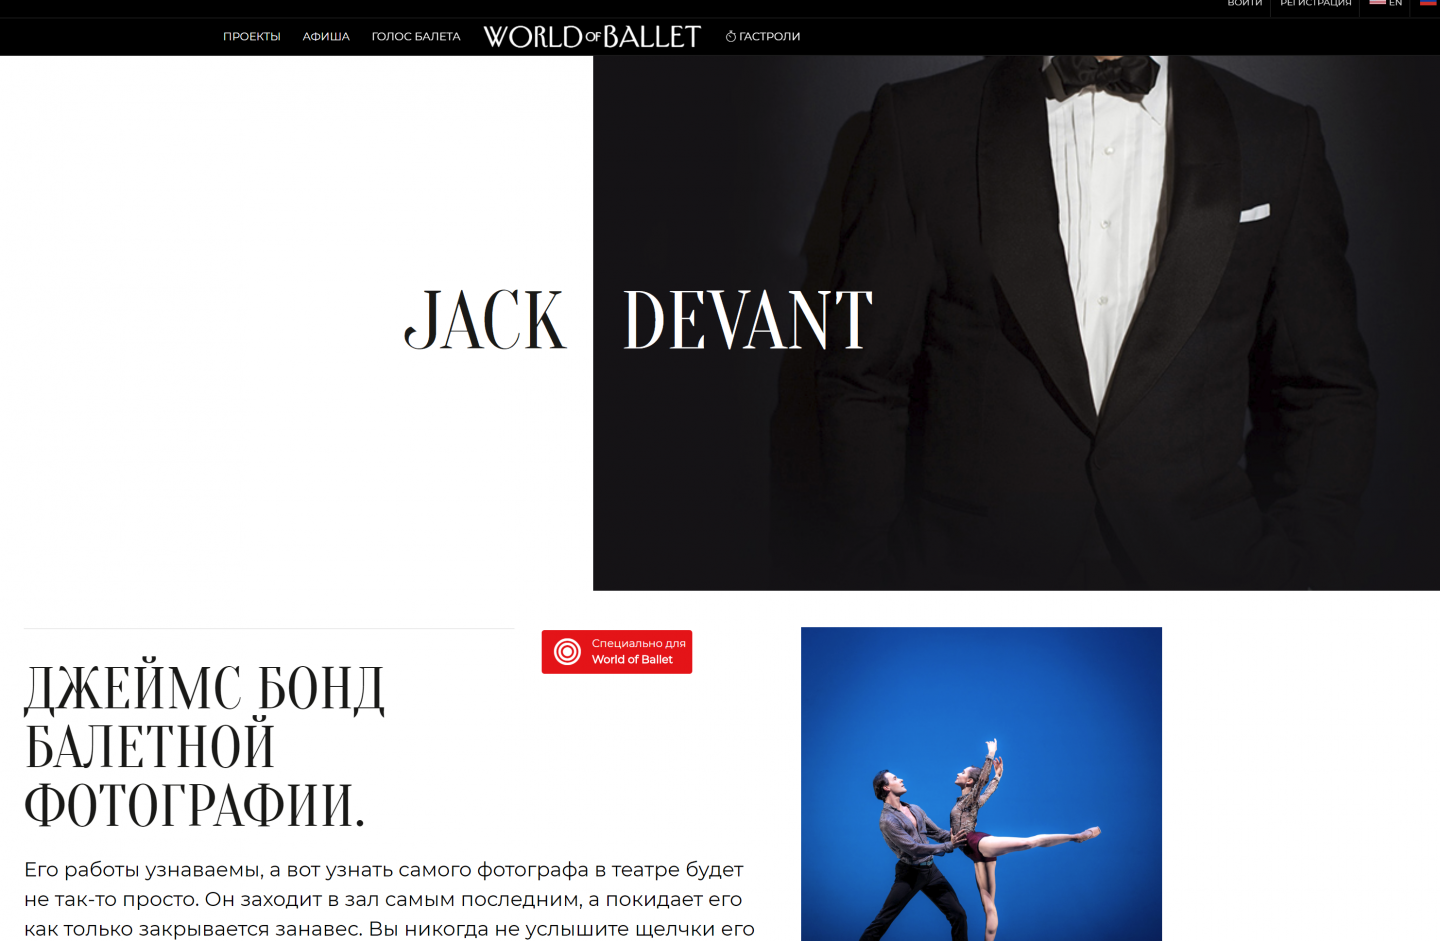 world of ballet